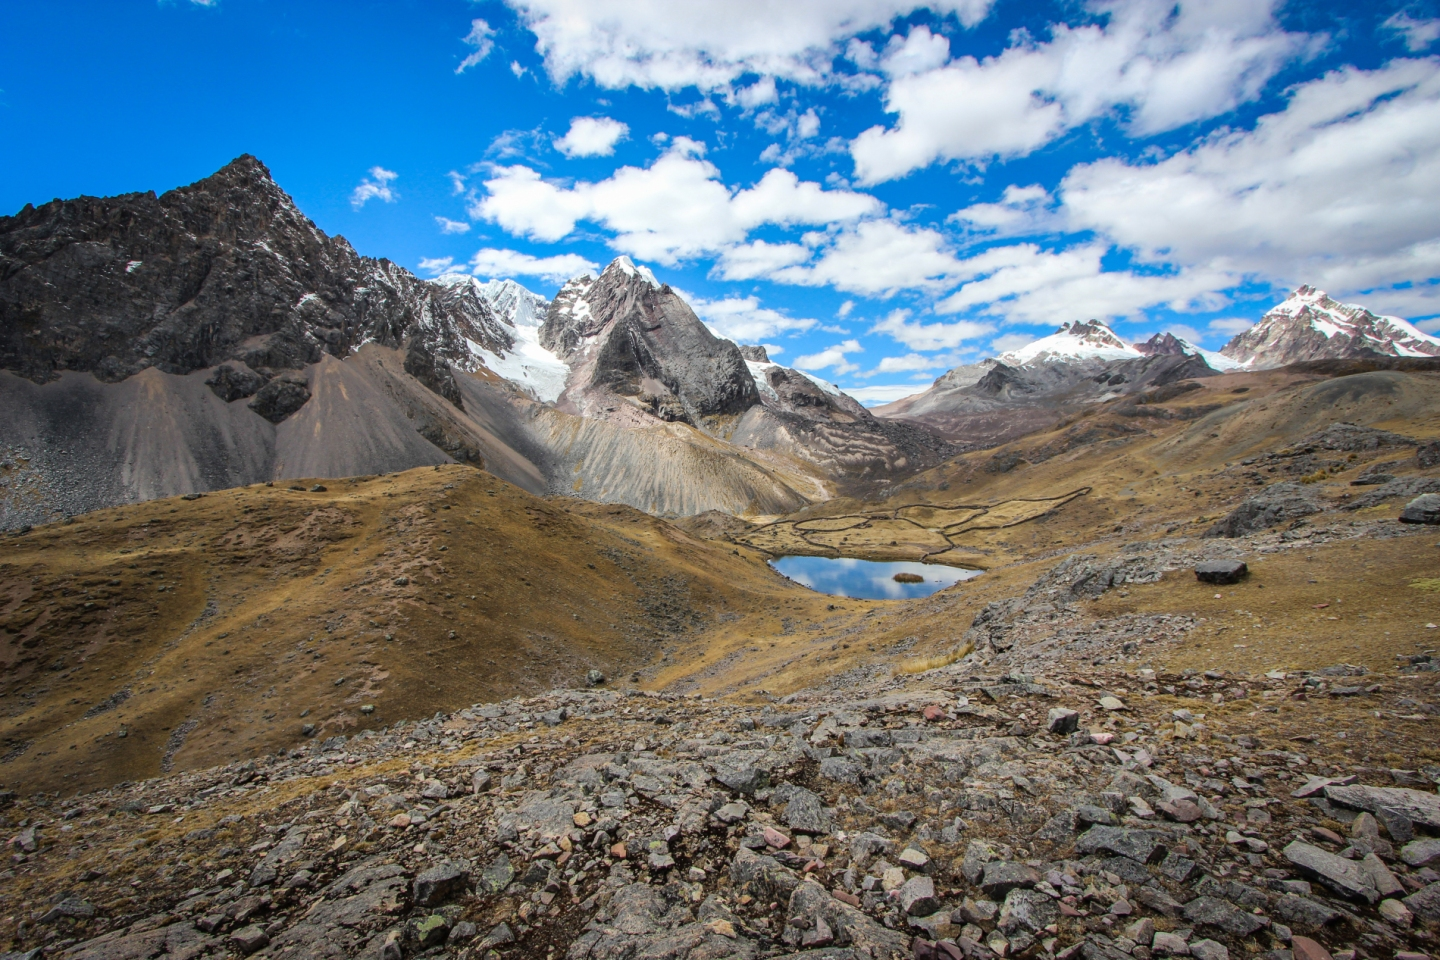 A Complete Guide To The Ausangate Trek